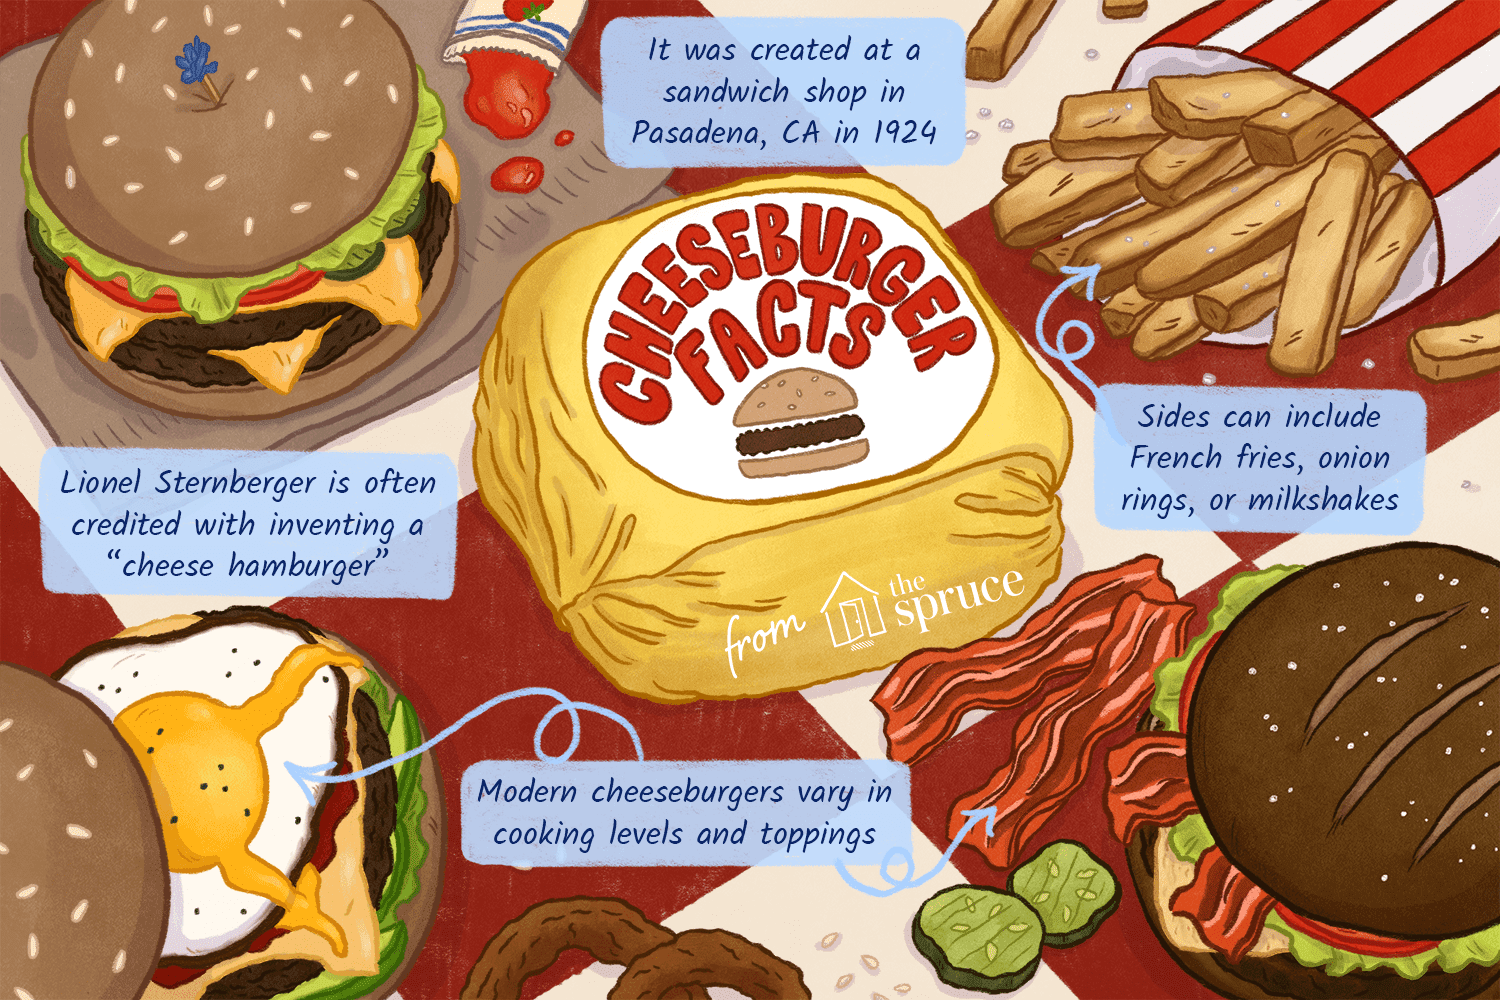 illustration with cheeseburger facts